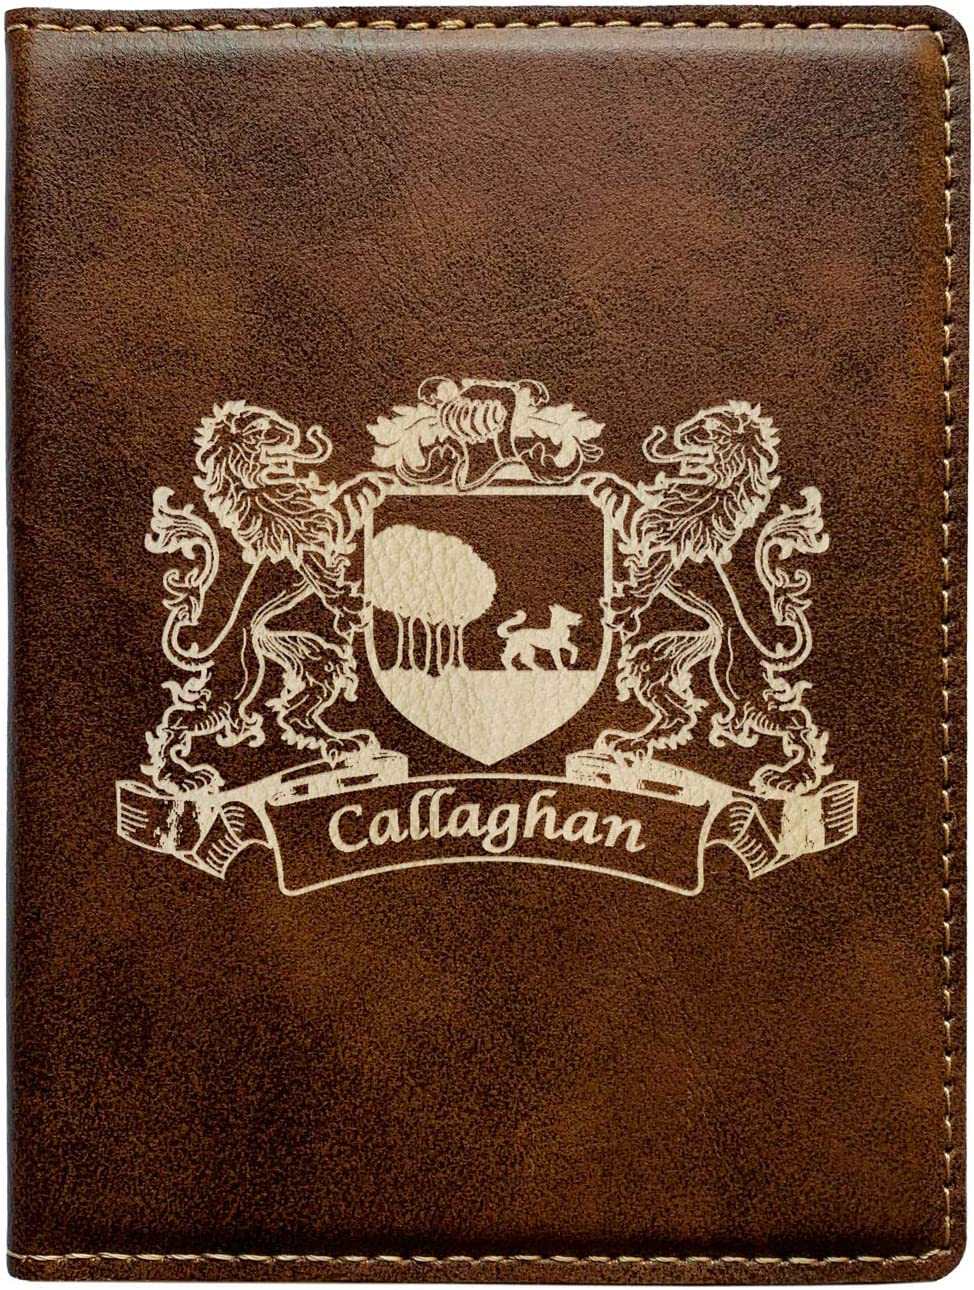 Callaghan Irish Coat of Arms Leather Passport Wallet